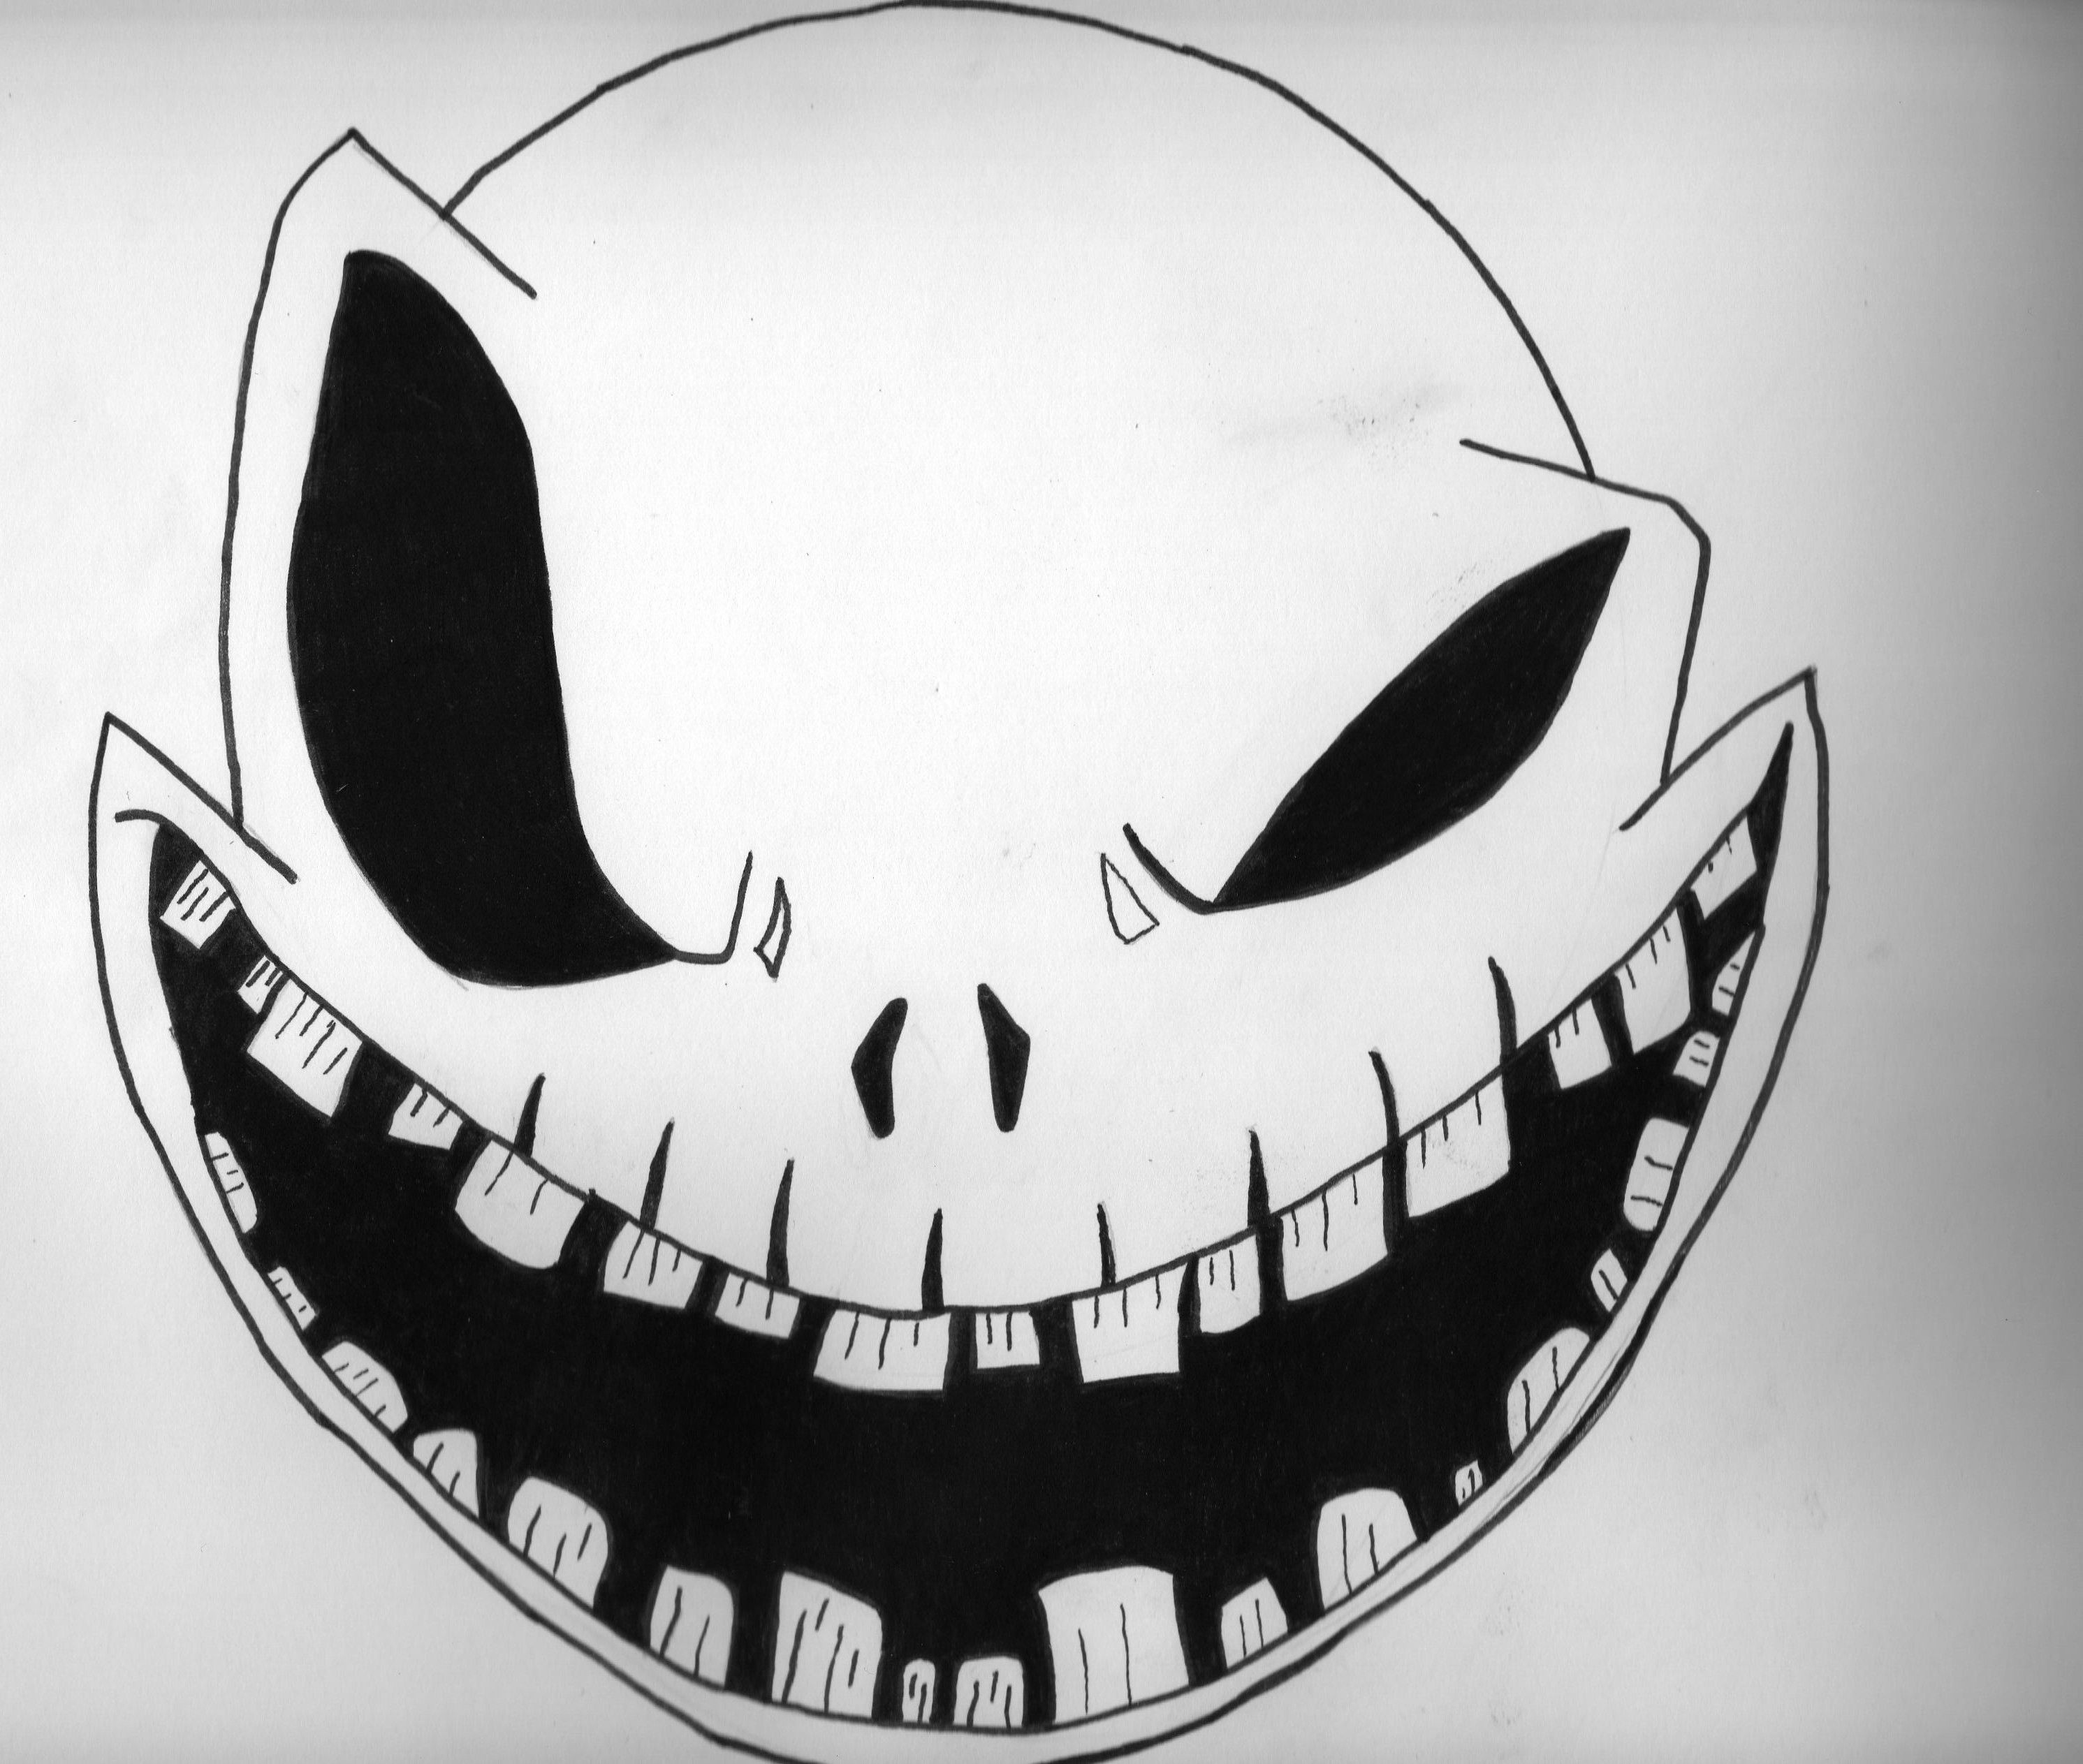 Scary Pumpkin Patterns Free Printable | Monster Face Pumpkin Stencil - Scary Pumpkin Patterns Free Printable